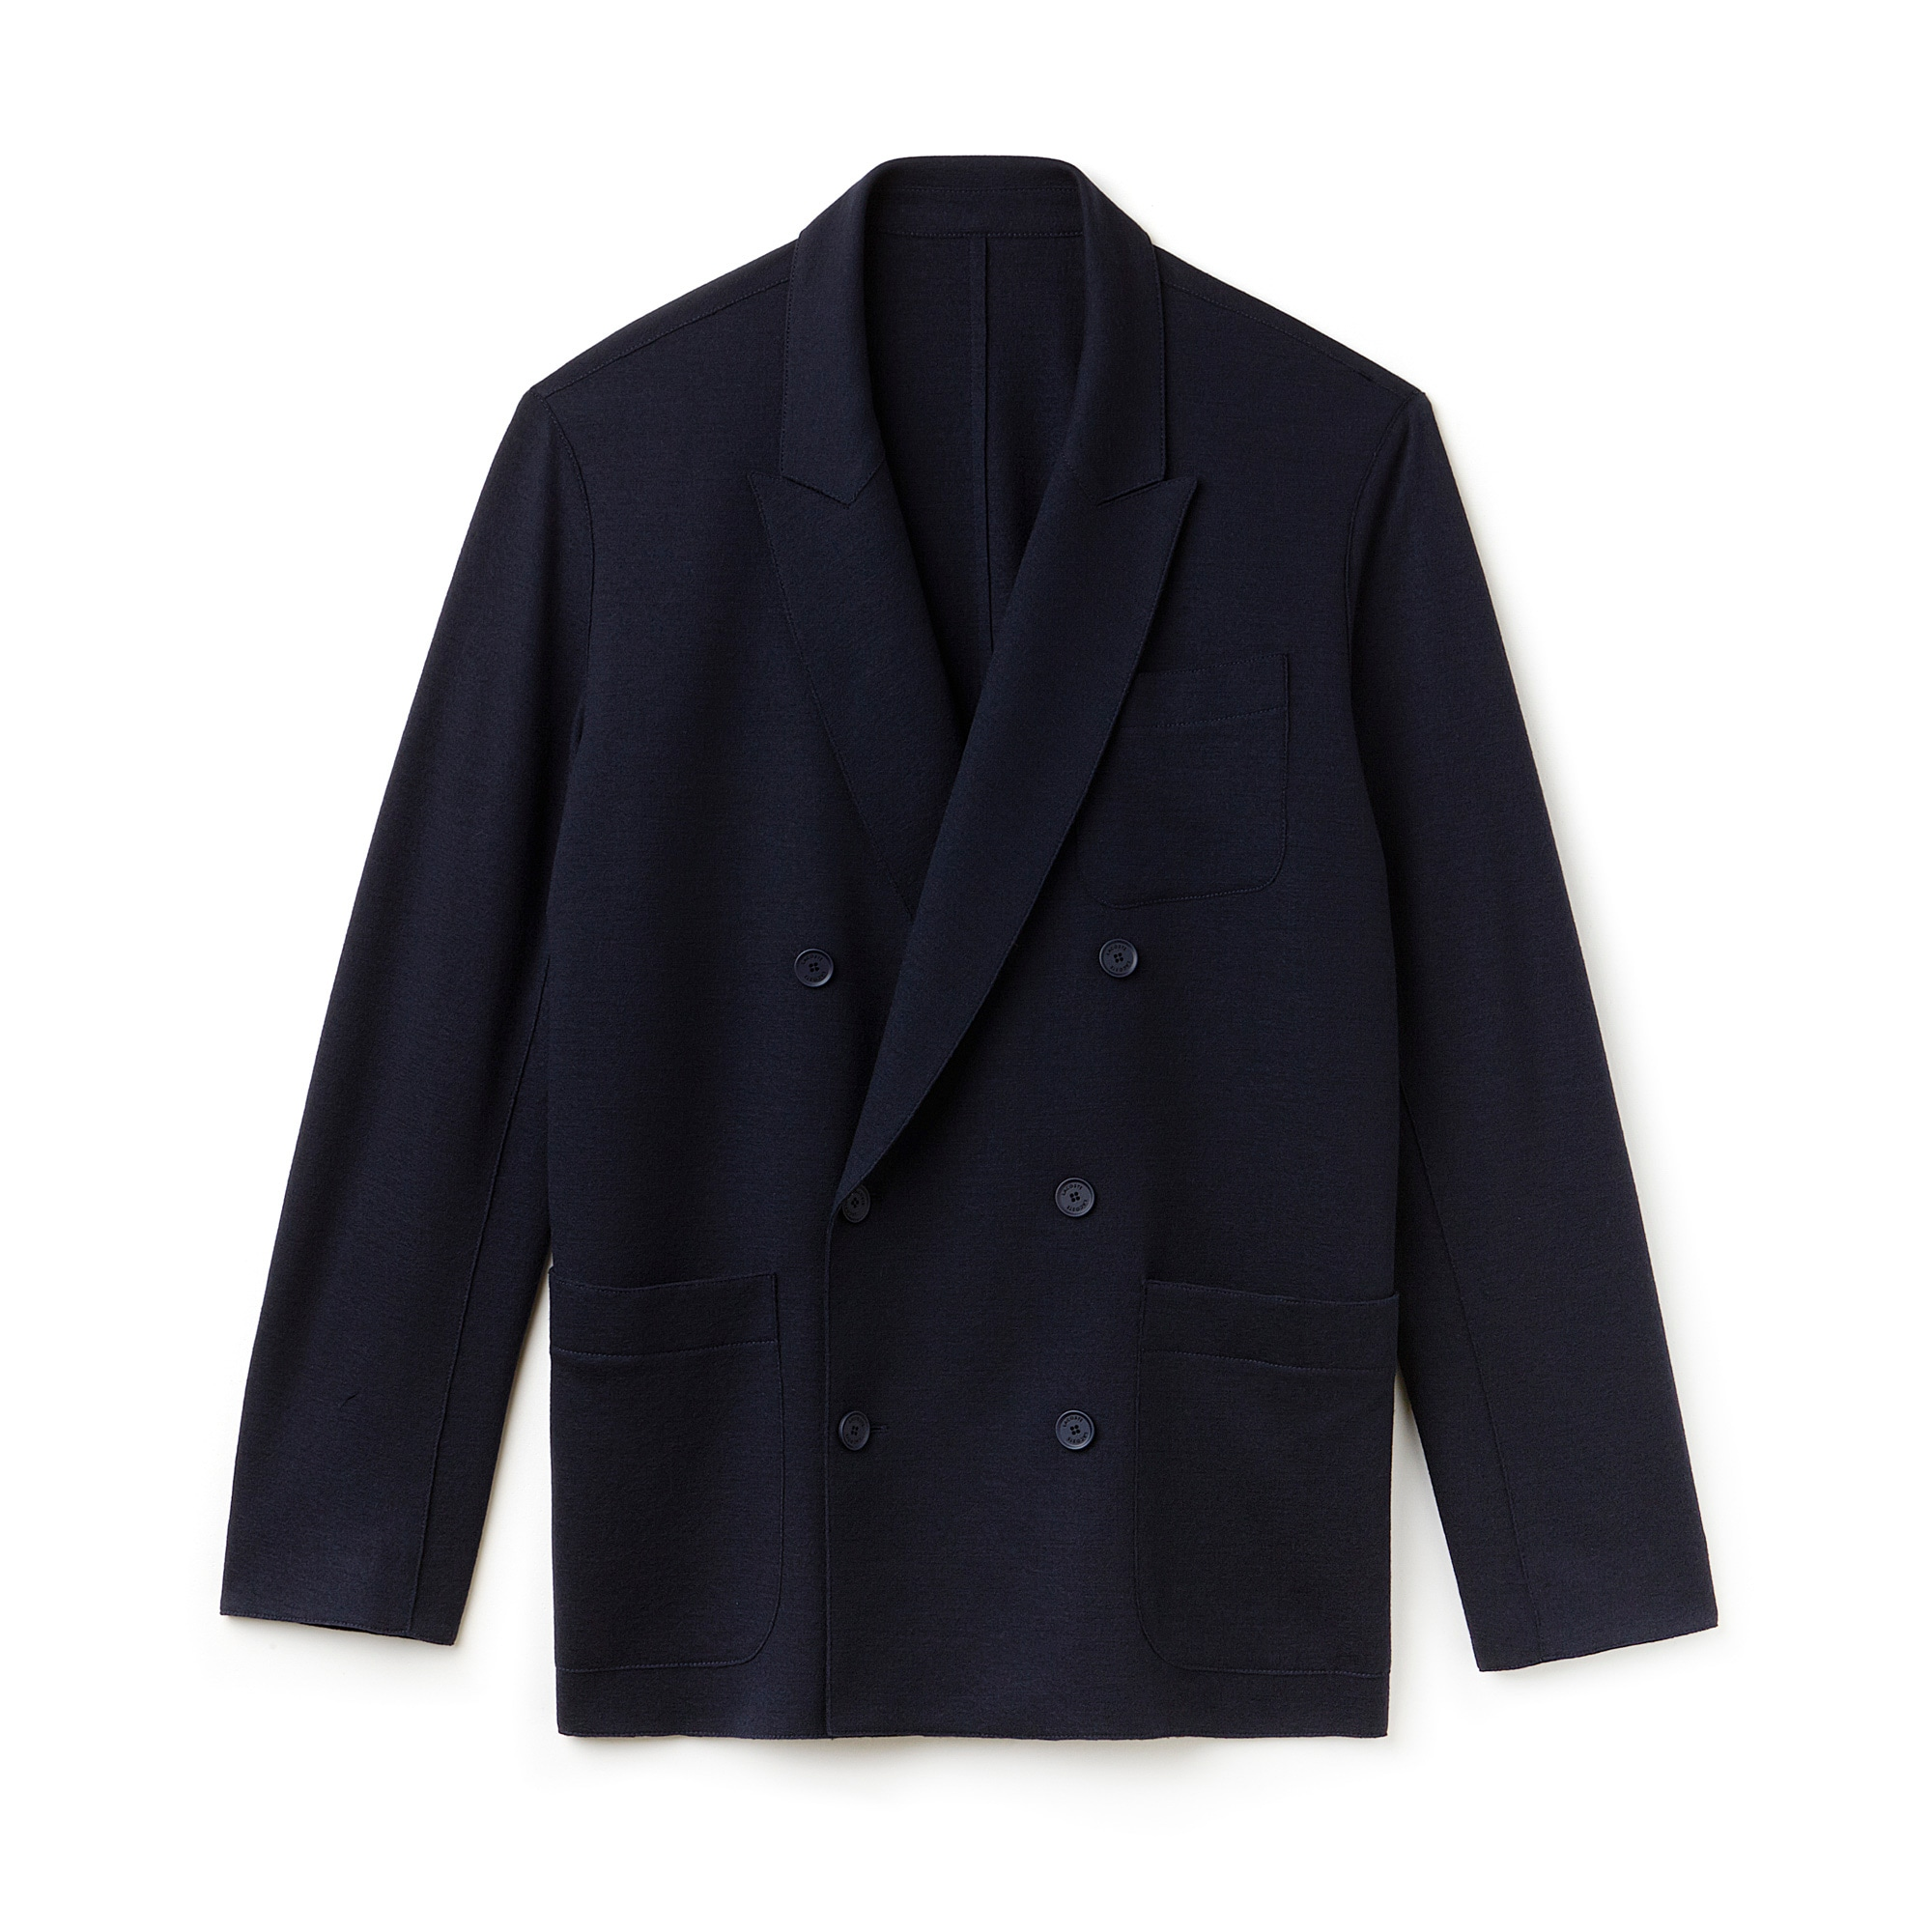 Men's Fashion Show Wool Interlock Blazer